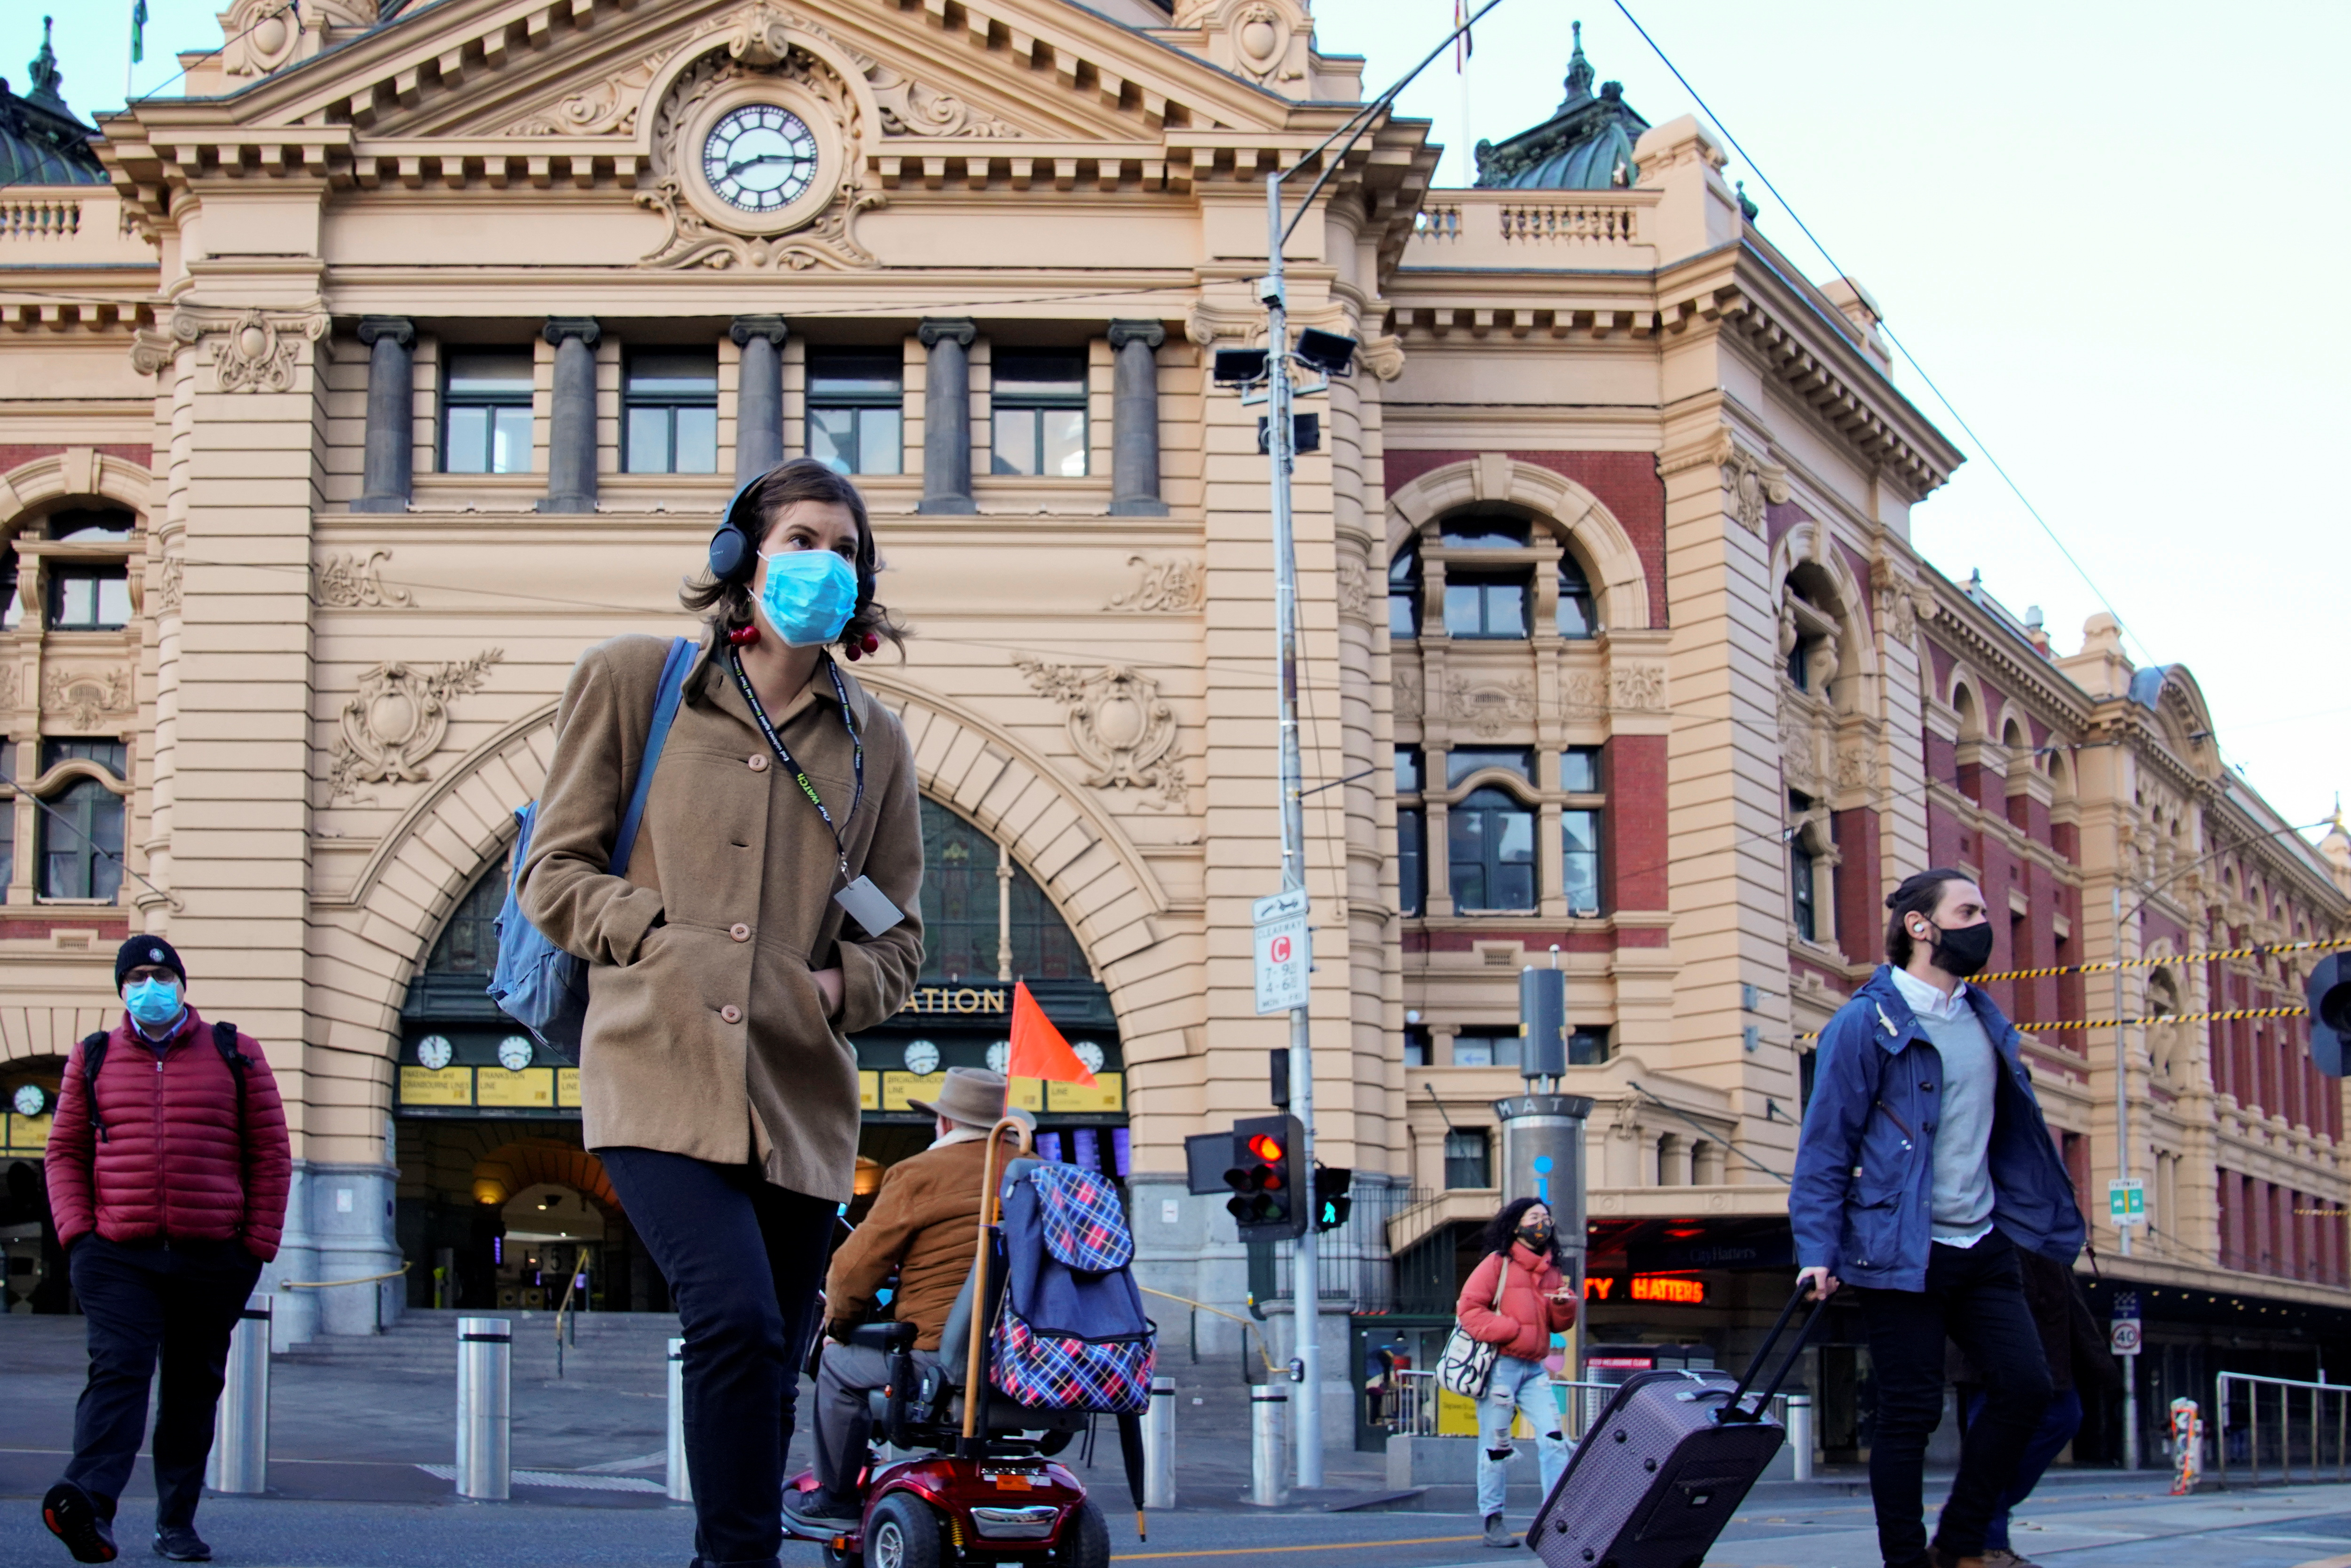 Pedestrians cross the road at Flinders Street Station on the first day of eased coronavirus disease (COVID-19) restrictions for the state of Victoria following an extended lockdown in Melbourne, Australia, June 11, 2021.  REUTERS/Sandra Sanders